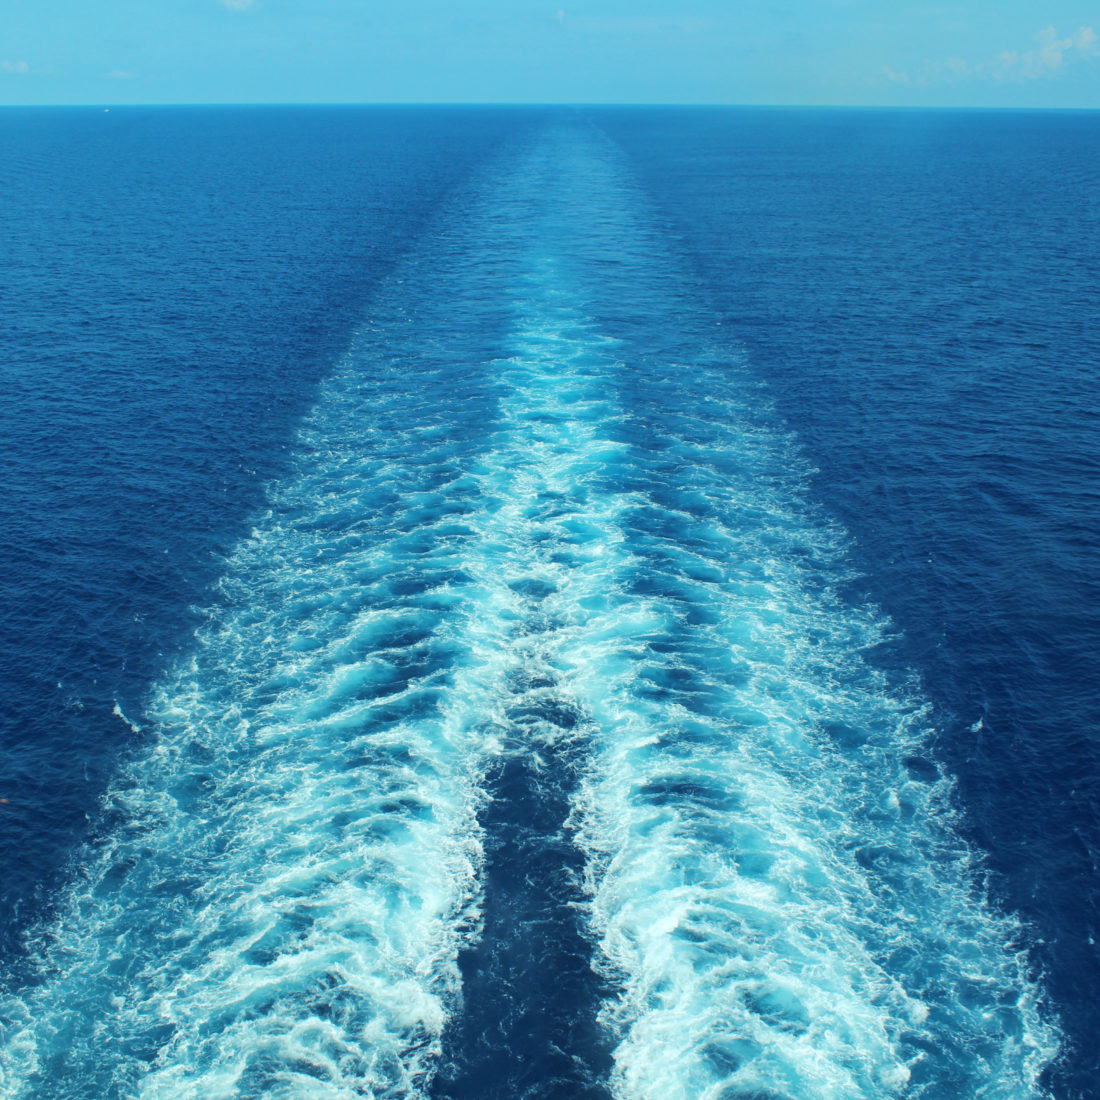 Image of the sea with trails on the surface left by a boat.